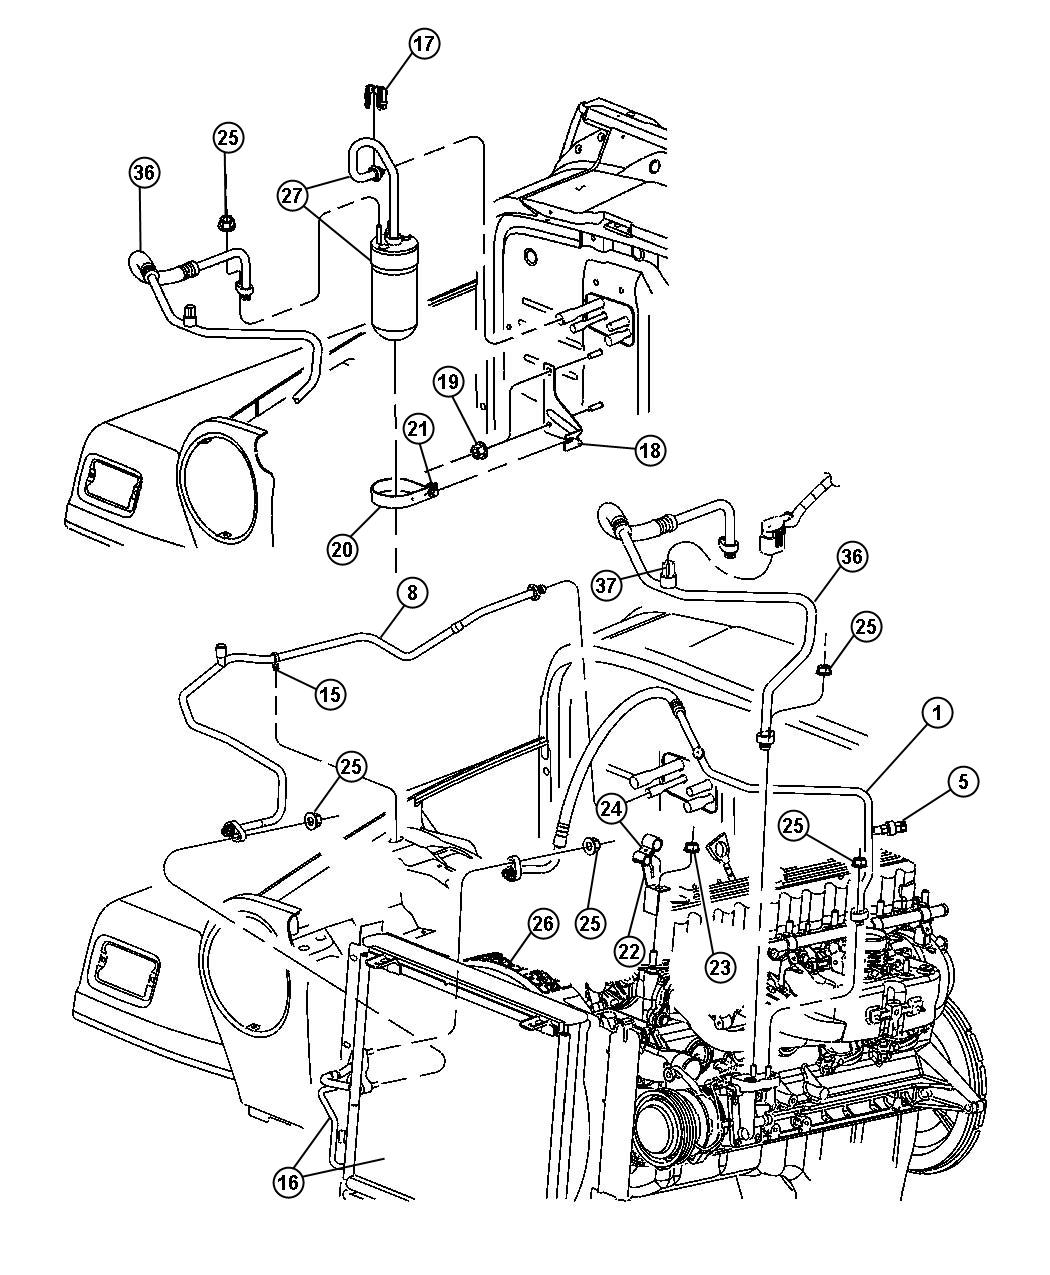 [DIAGRAM] Trailer Wiring Diagram For 2005 Jeep Wrangler